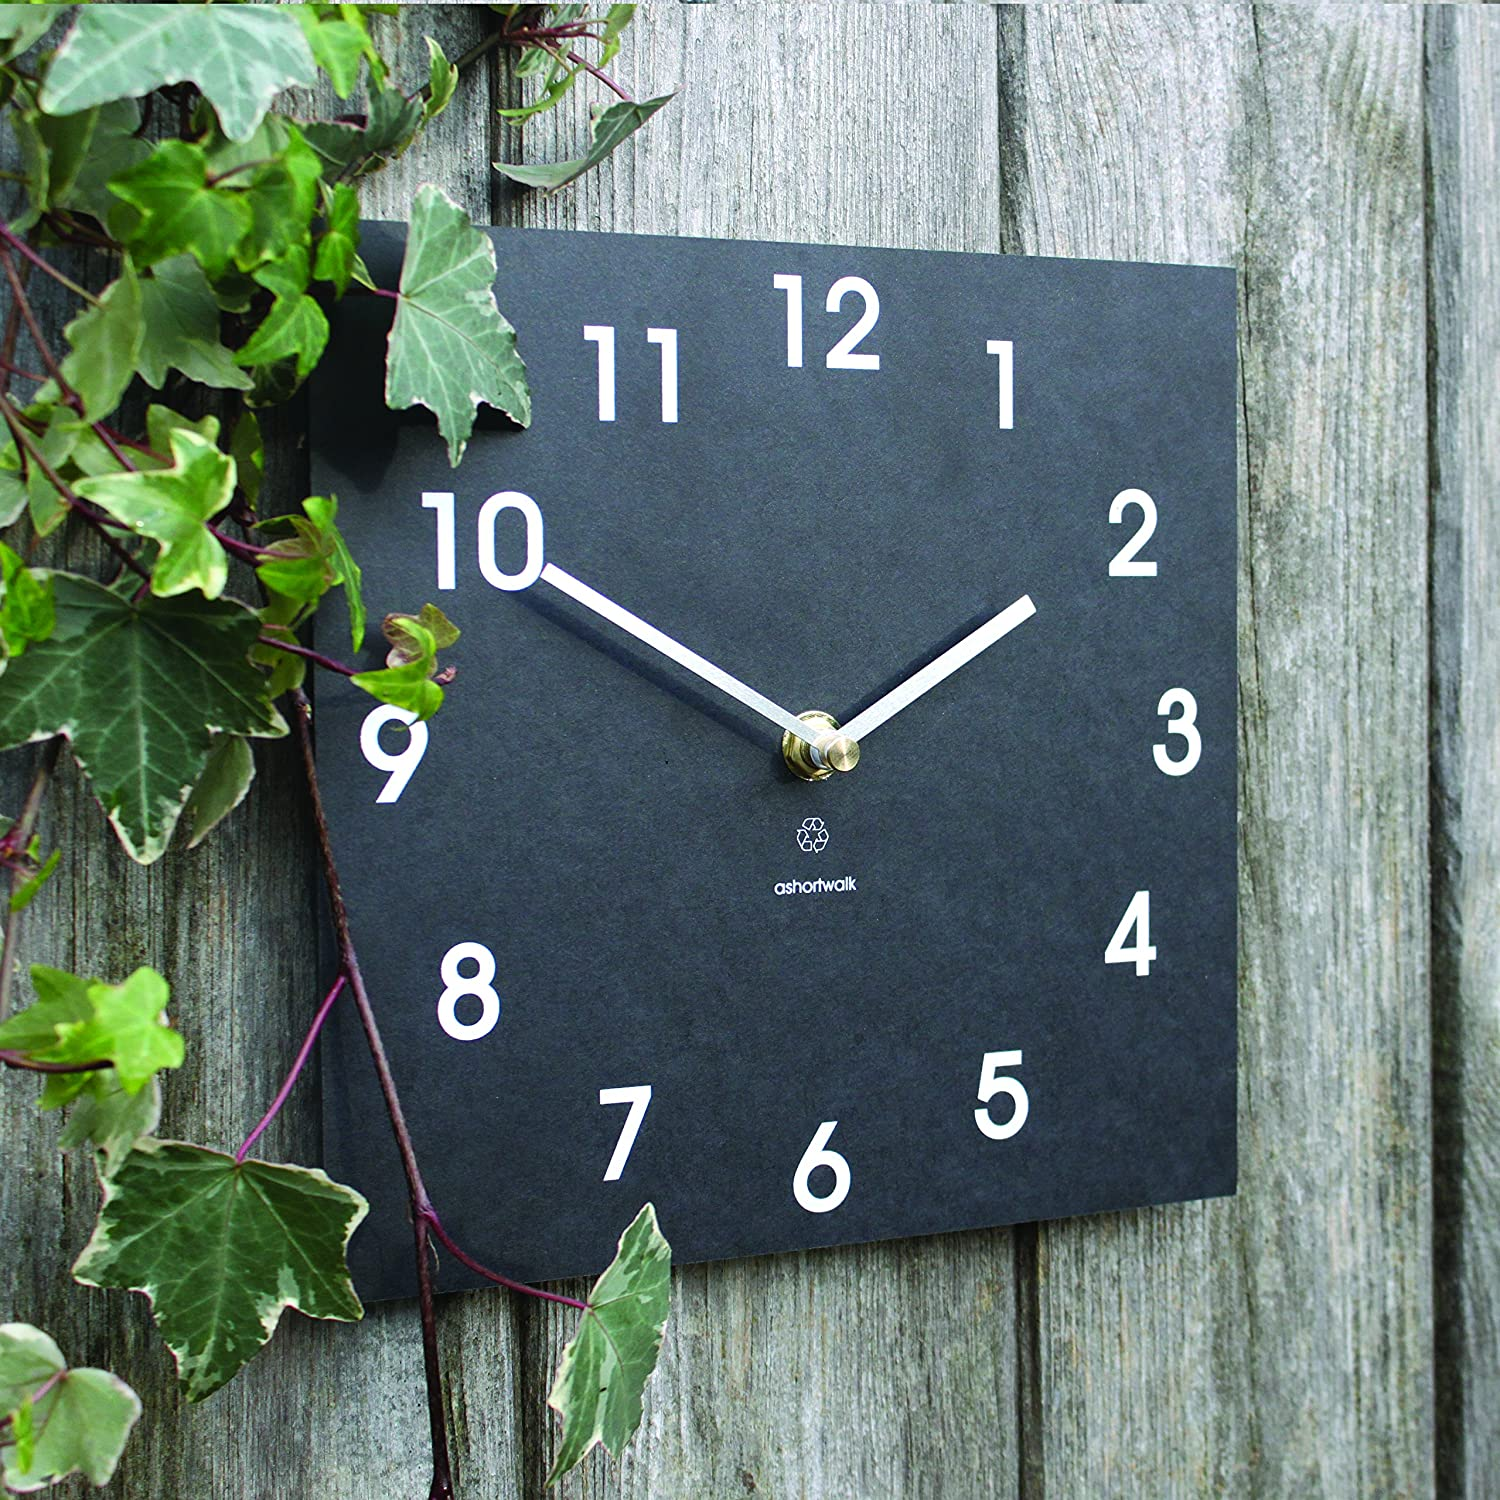 Bosmere W425 Eco Indoor Outdoor Recycled Wall Clock, Black